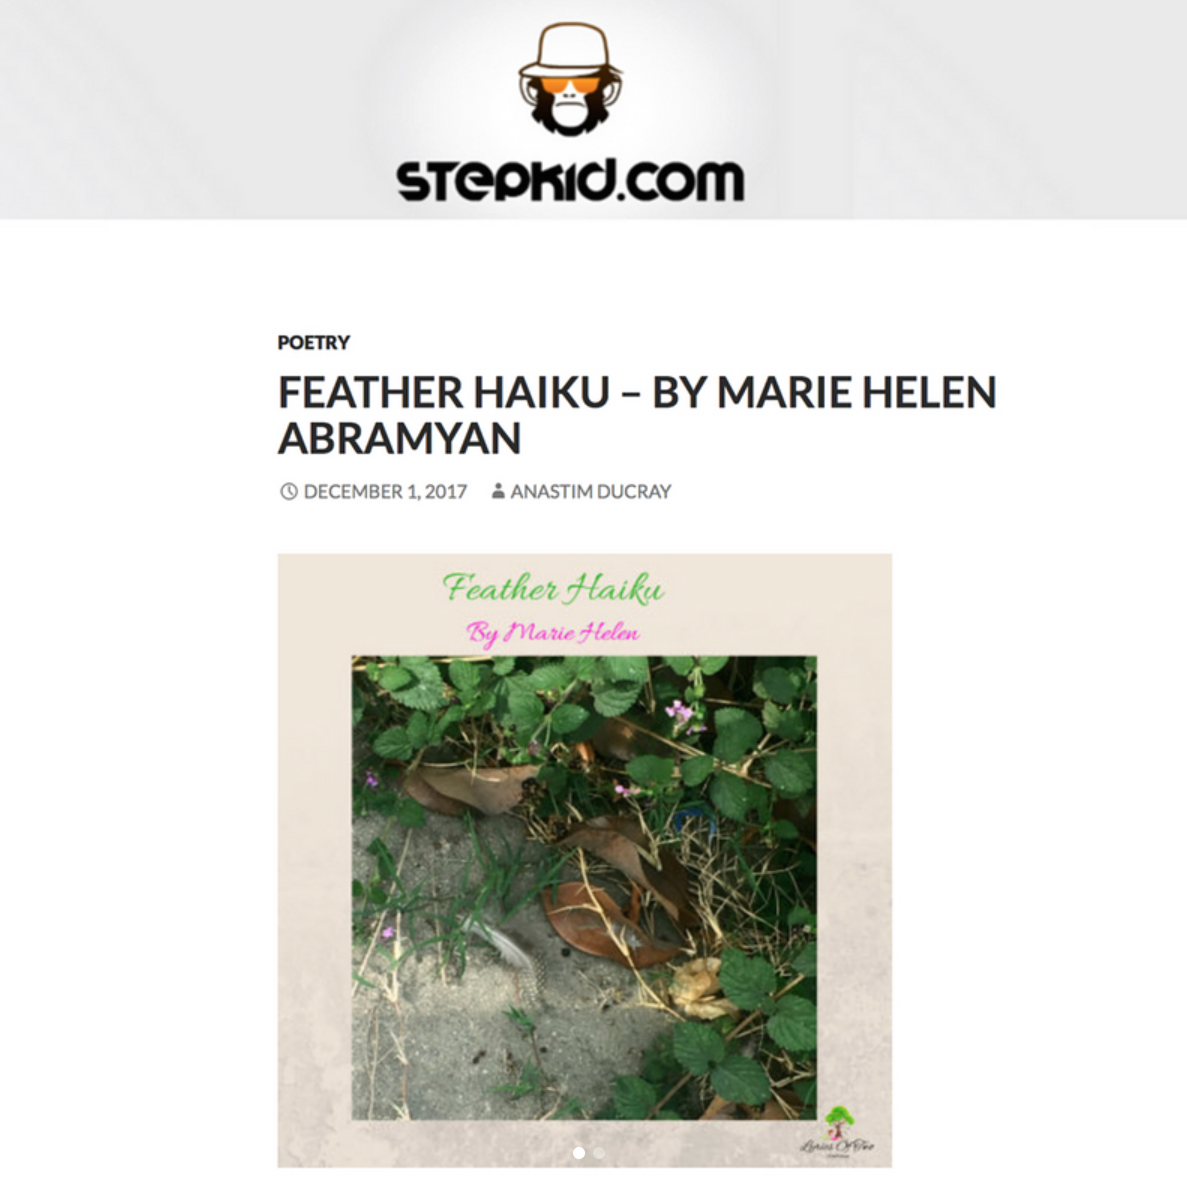 """Feather Haiku"" By Marie Helen Abramyan Published In Stepkid Magazine!"